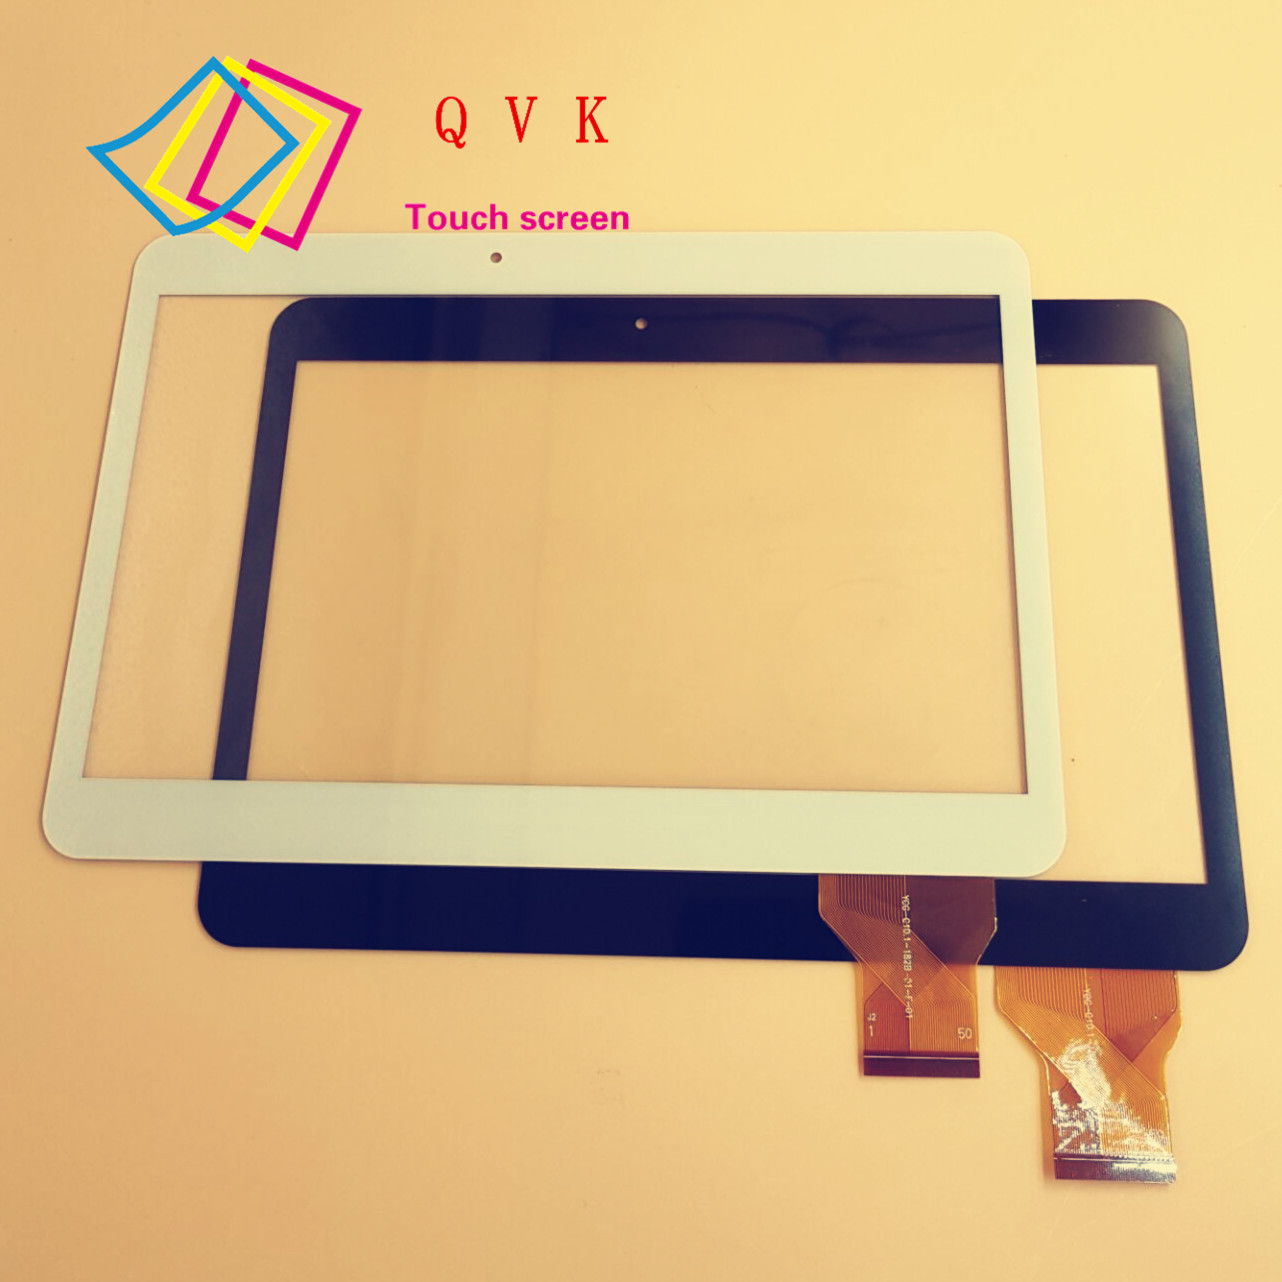 10 PCS 10.1inch Tablet N9106 YLD-CEGA350-FPC-A1  touch screen ycg-C10.1-182b-01-f-01 Noting size and color free shipping white black 100% original 10 inch tablet touch screen yld cega350 fpc a1 hxr handwritten capacitive touch screen